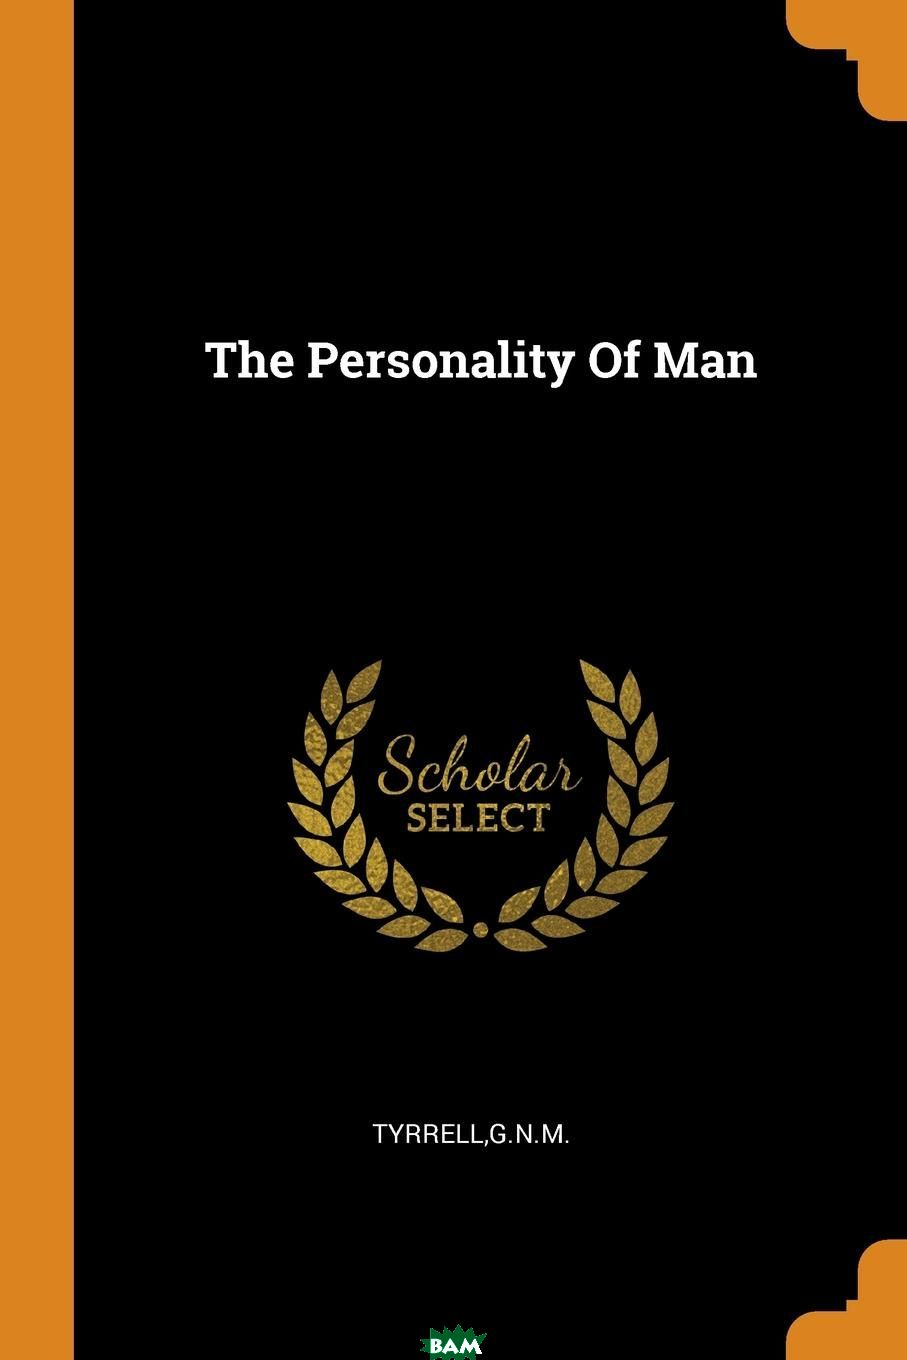 The Personality Of Man